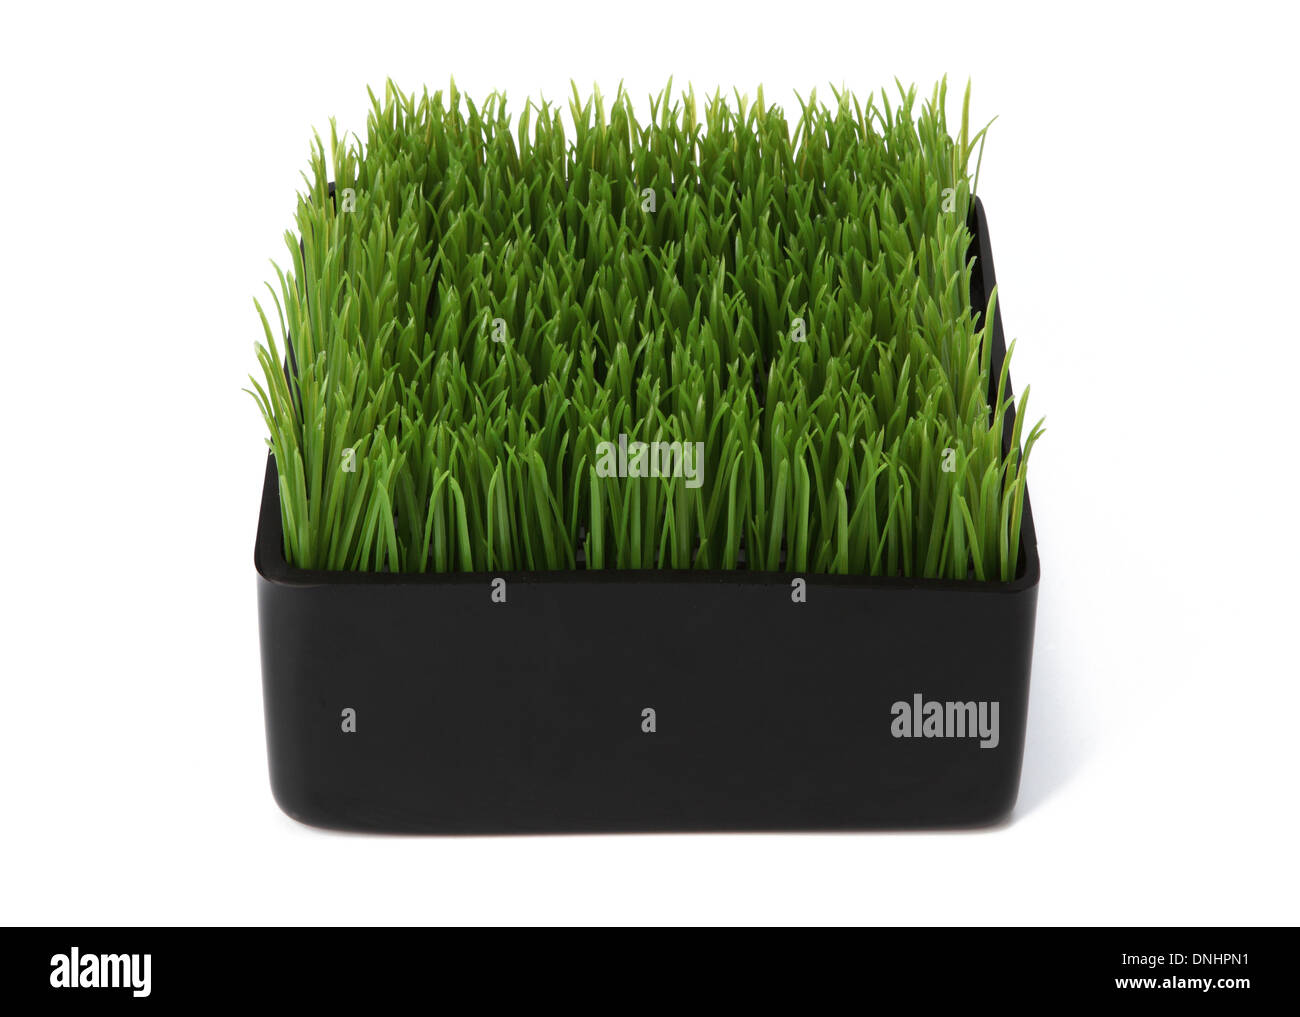 A small container with green grass on a white background. - Stock Image